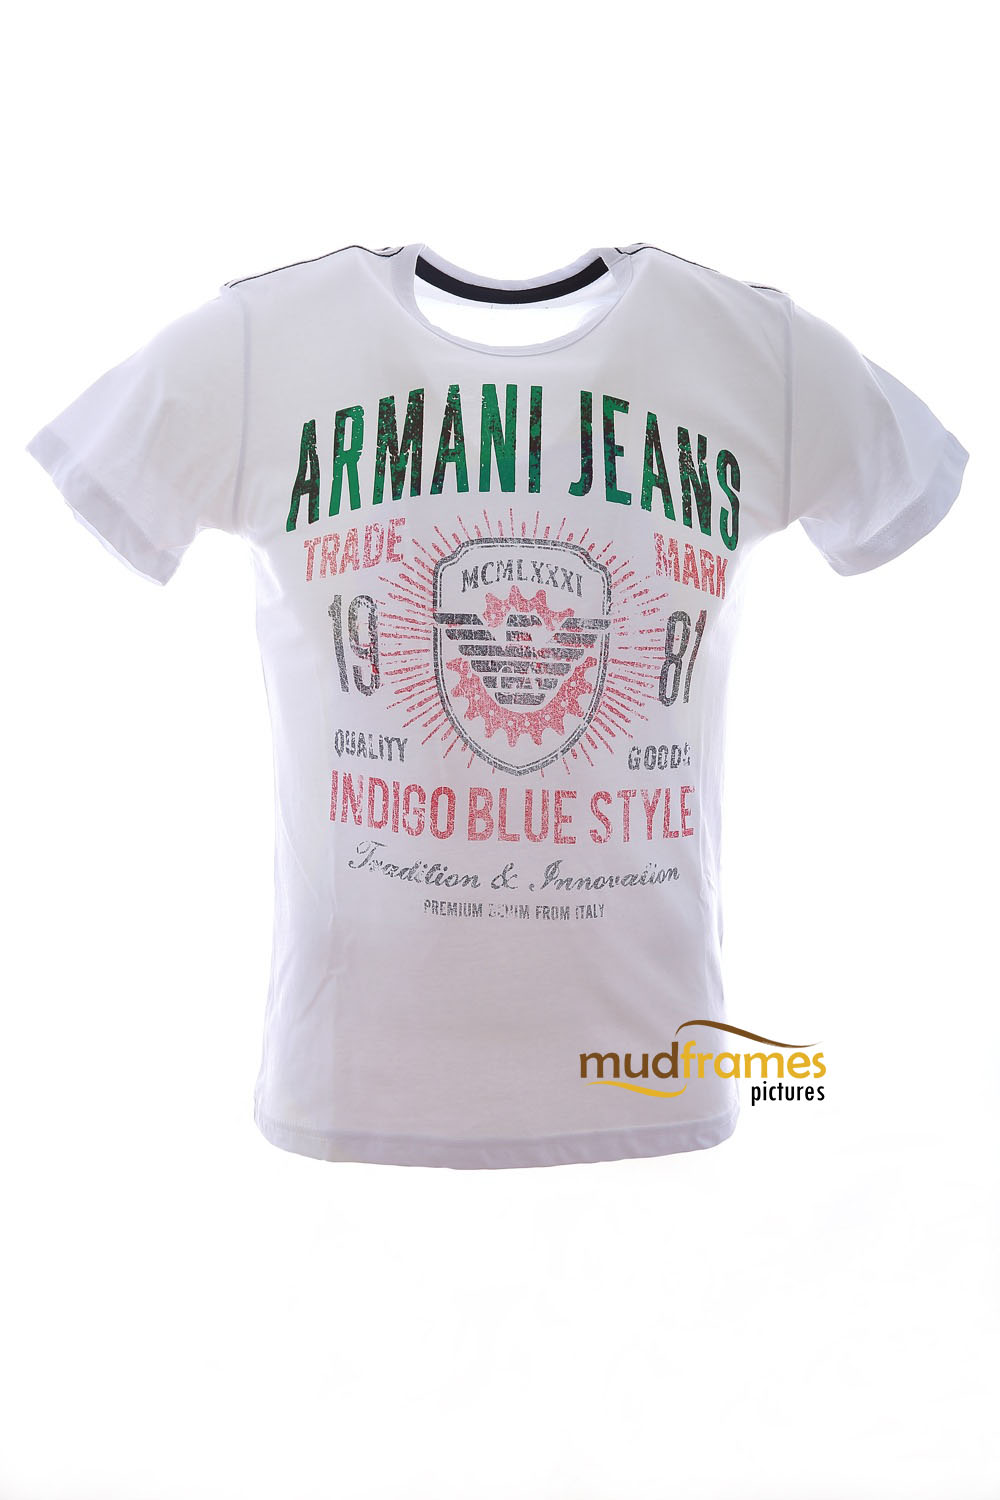 Armani Jeans T-Shirt on white background